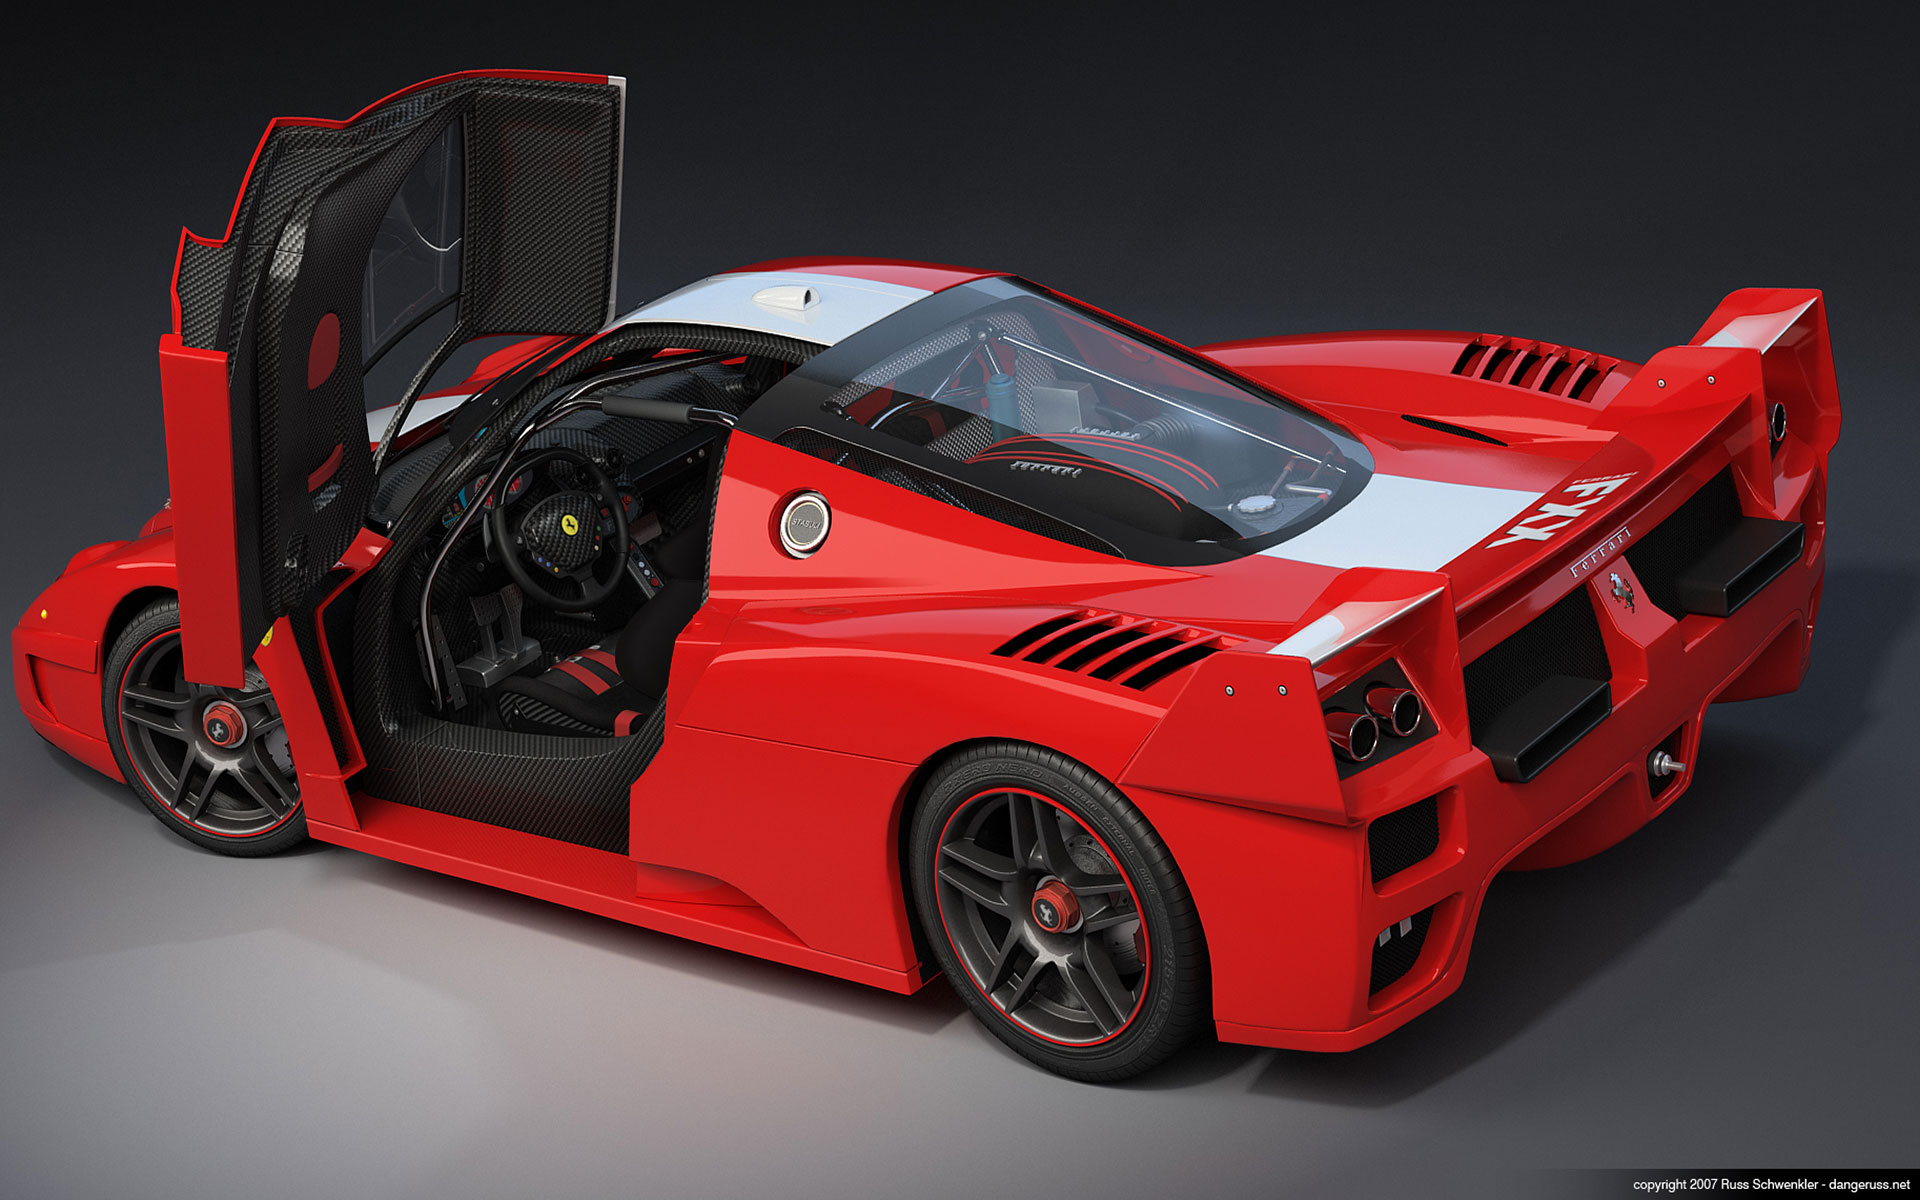 Ferrari FXX Wallpapers, Pictures, Images